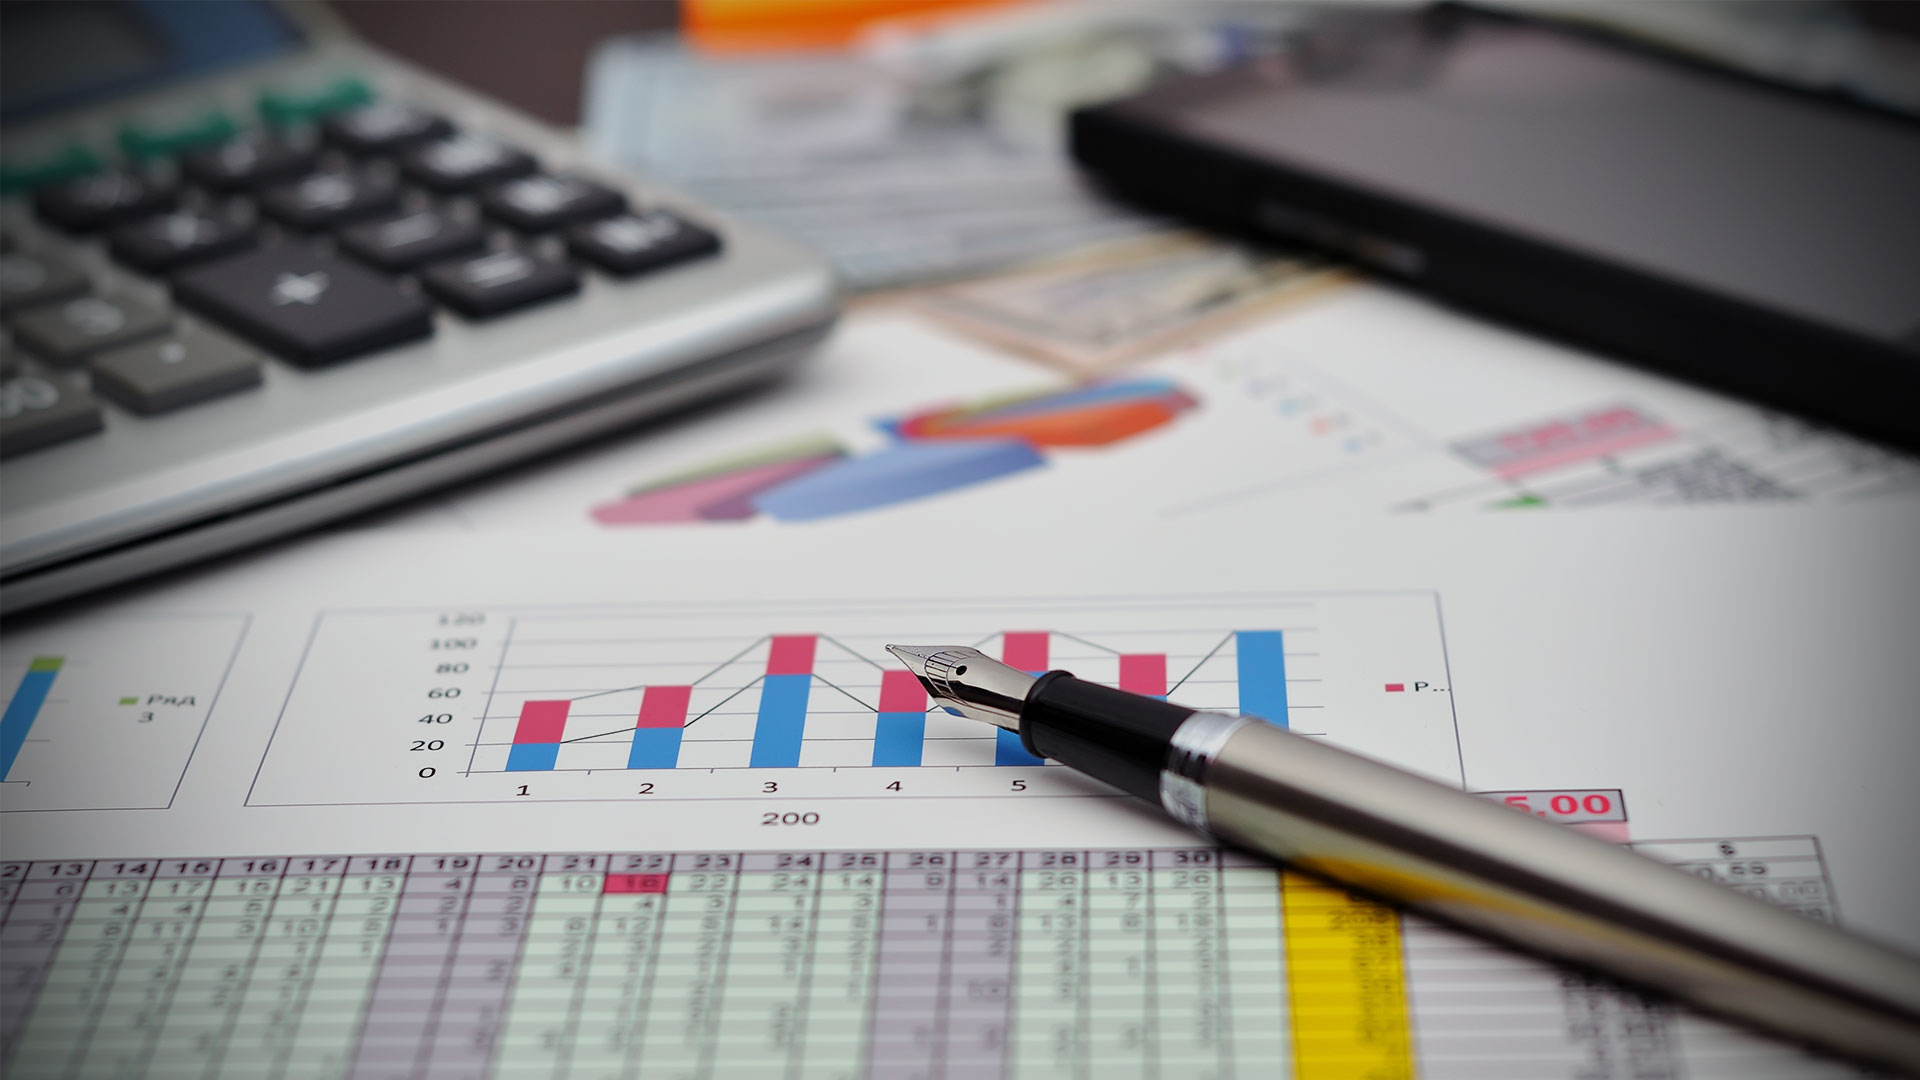 Charming Church And Taxes #1: Business_accounting_slider-1.jpg